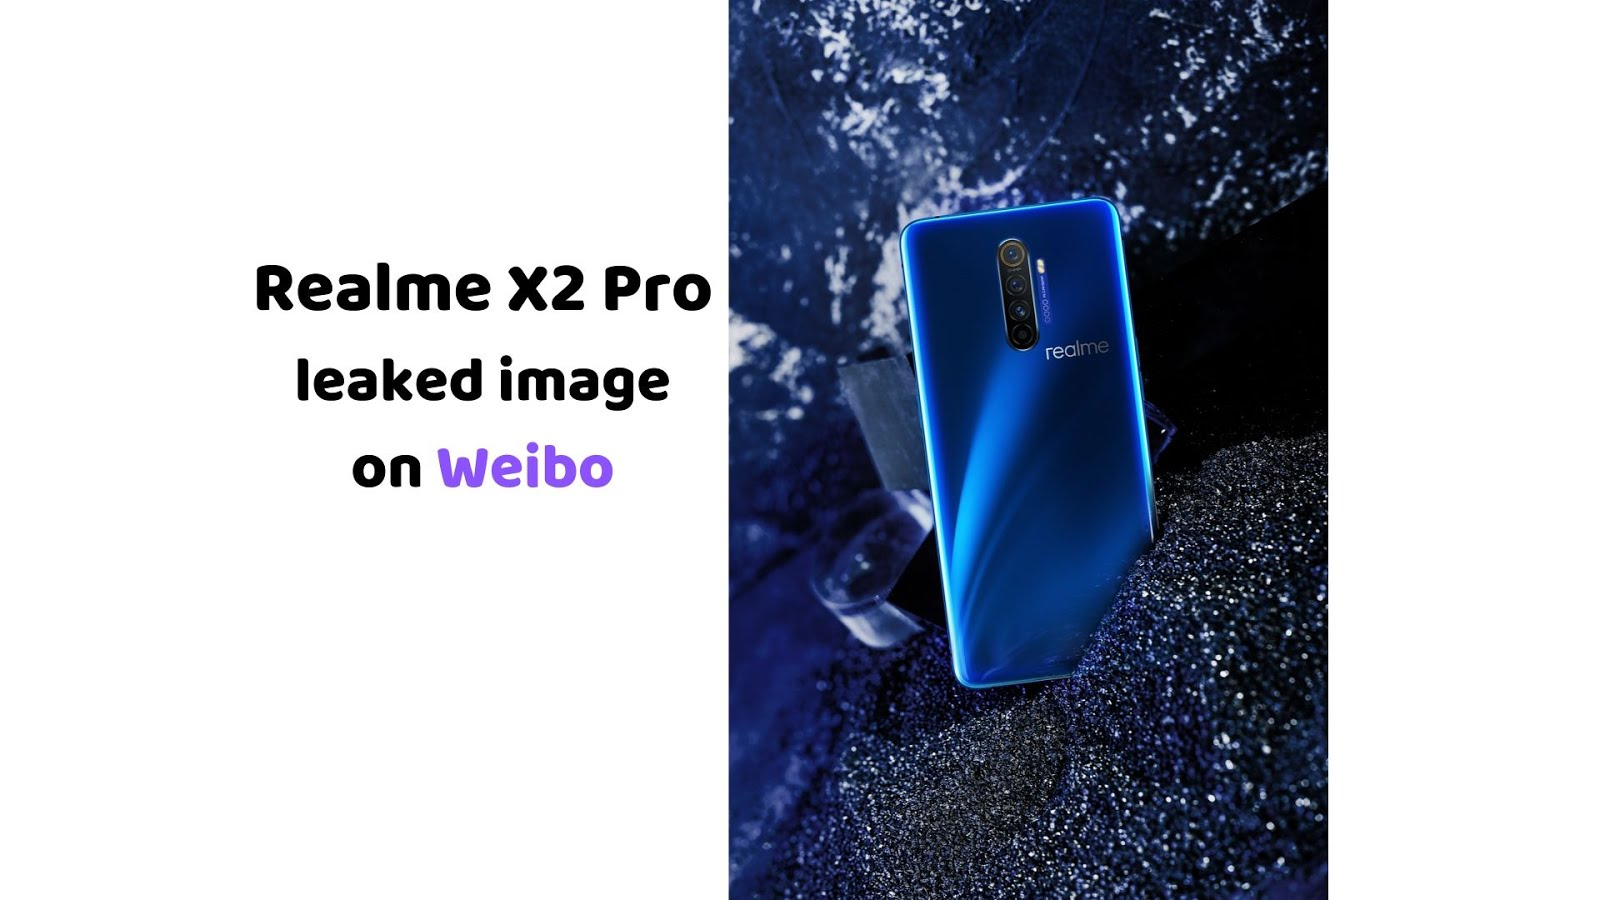 Realme X2 Pro leaked image